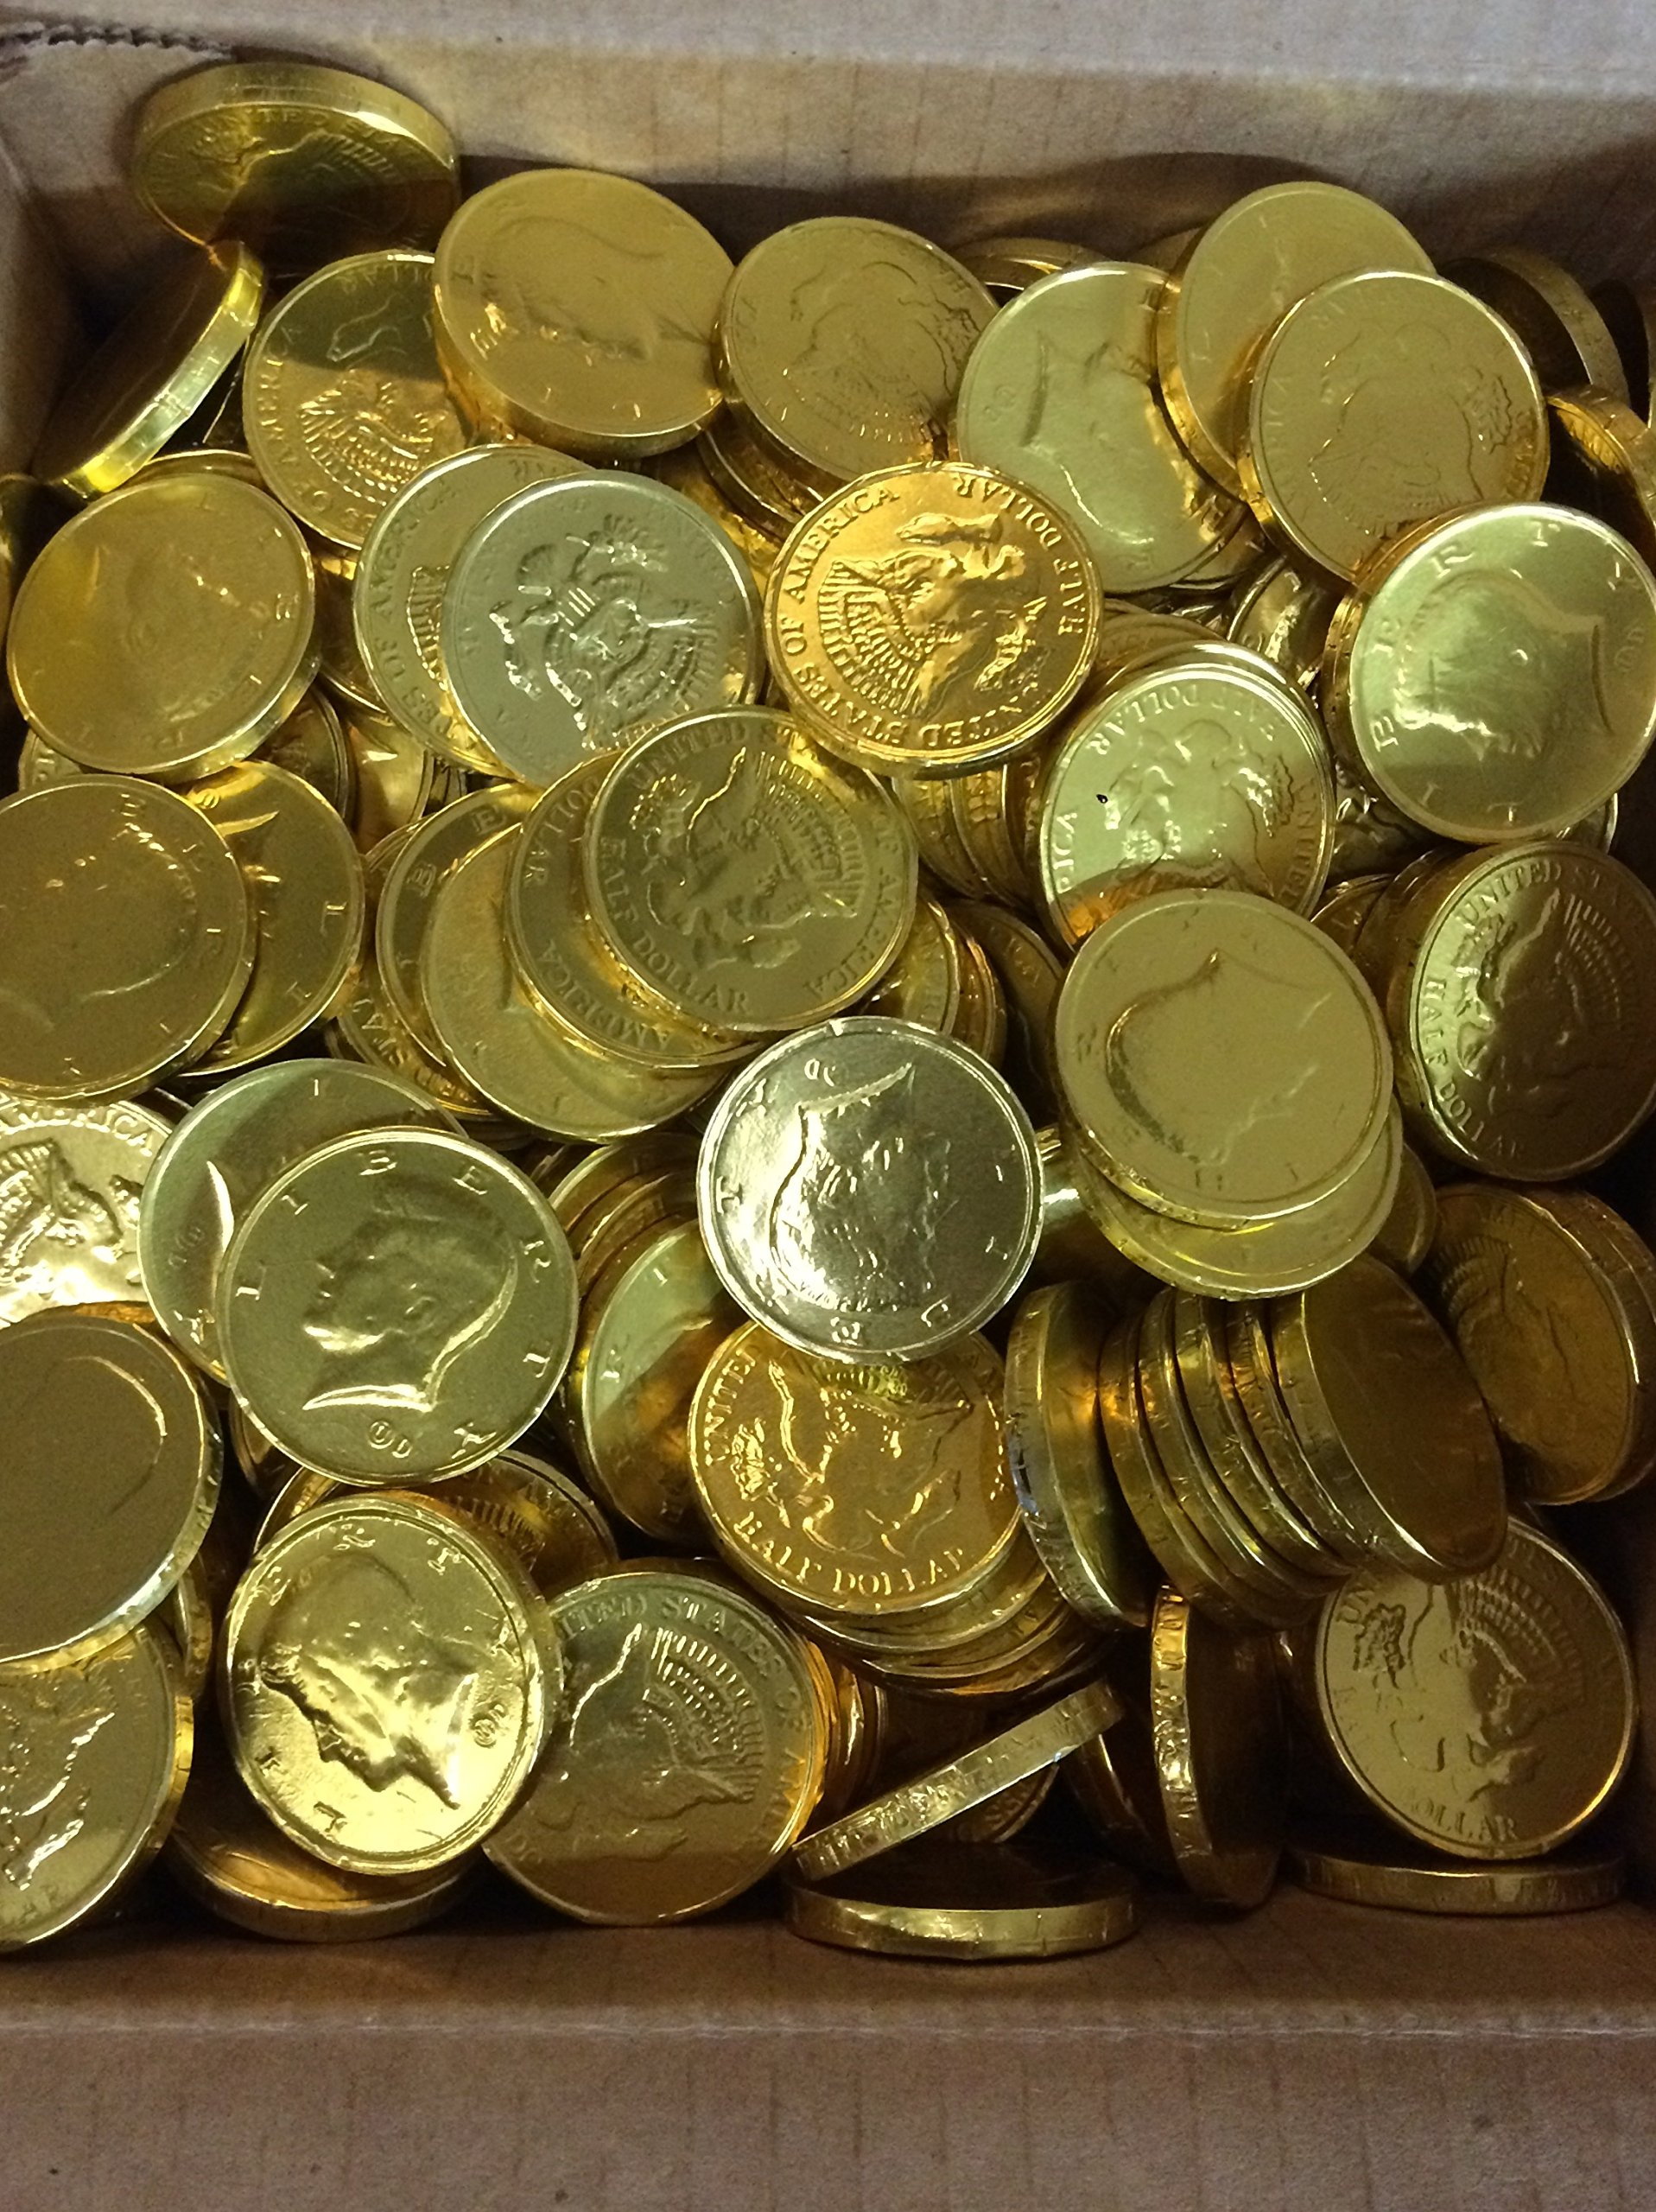 Solid Milk Chocolate Large Kennedy Gold Foil Coins - 10 Pound Box - Wholesale Bulk by River Finn Organics (Image #1)